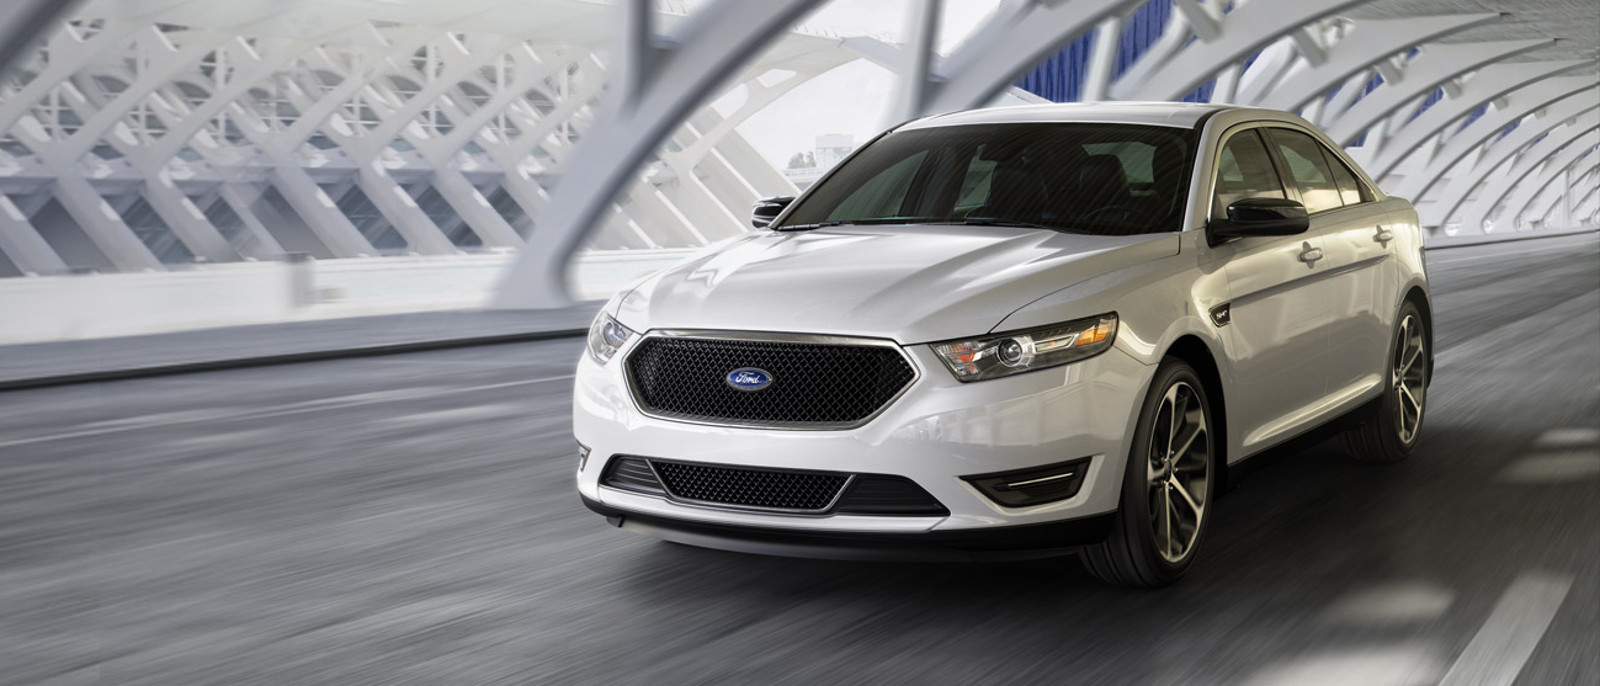 2015 Ford Taurus mpg